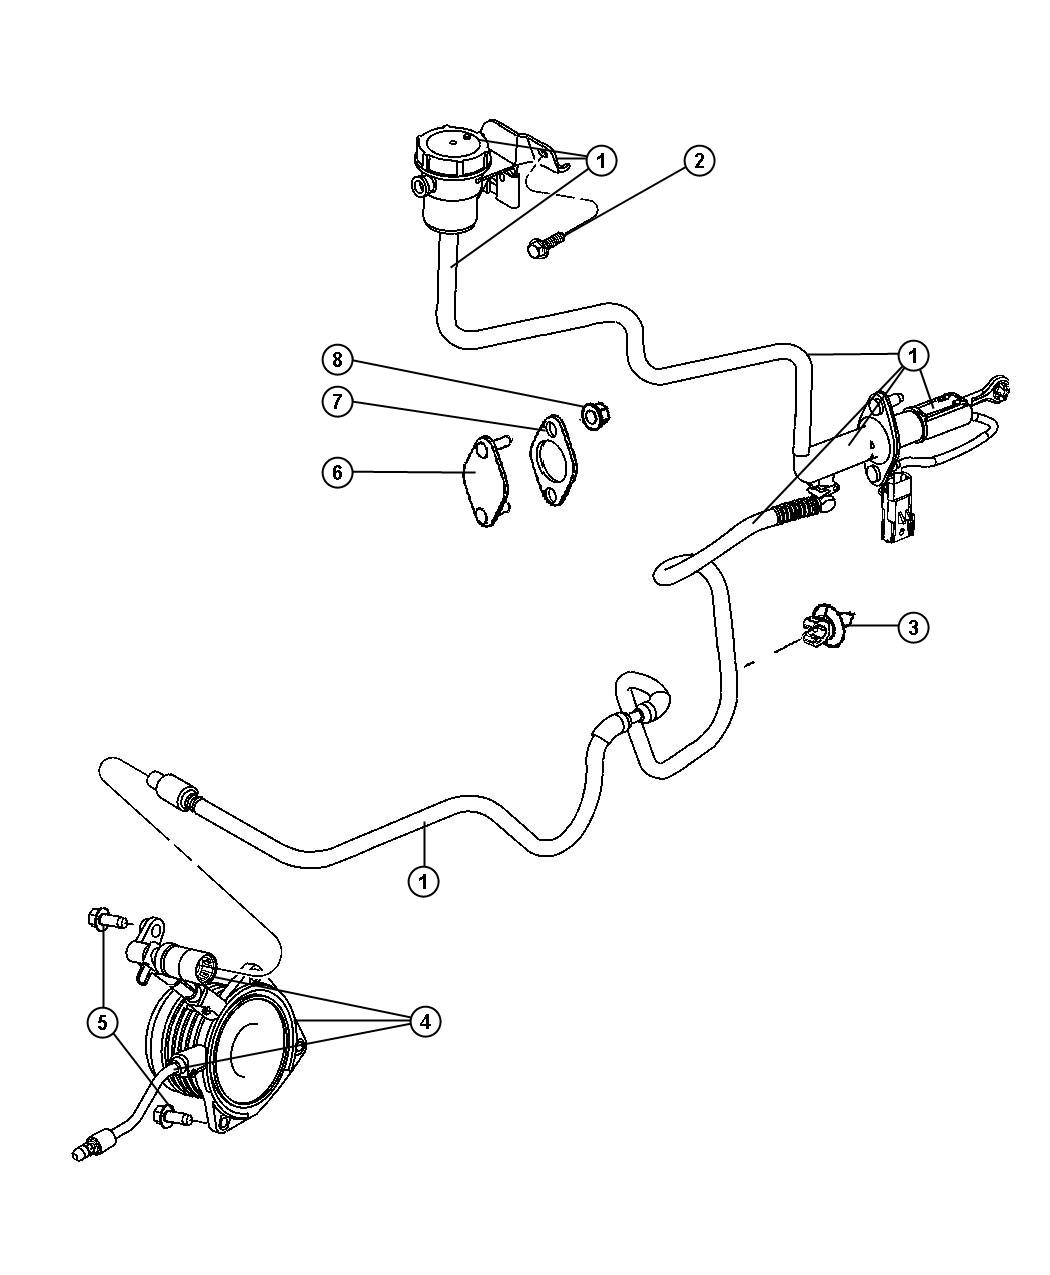 Mopar Transmission Linkage Diagram on 221469982588